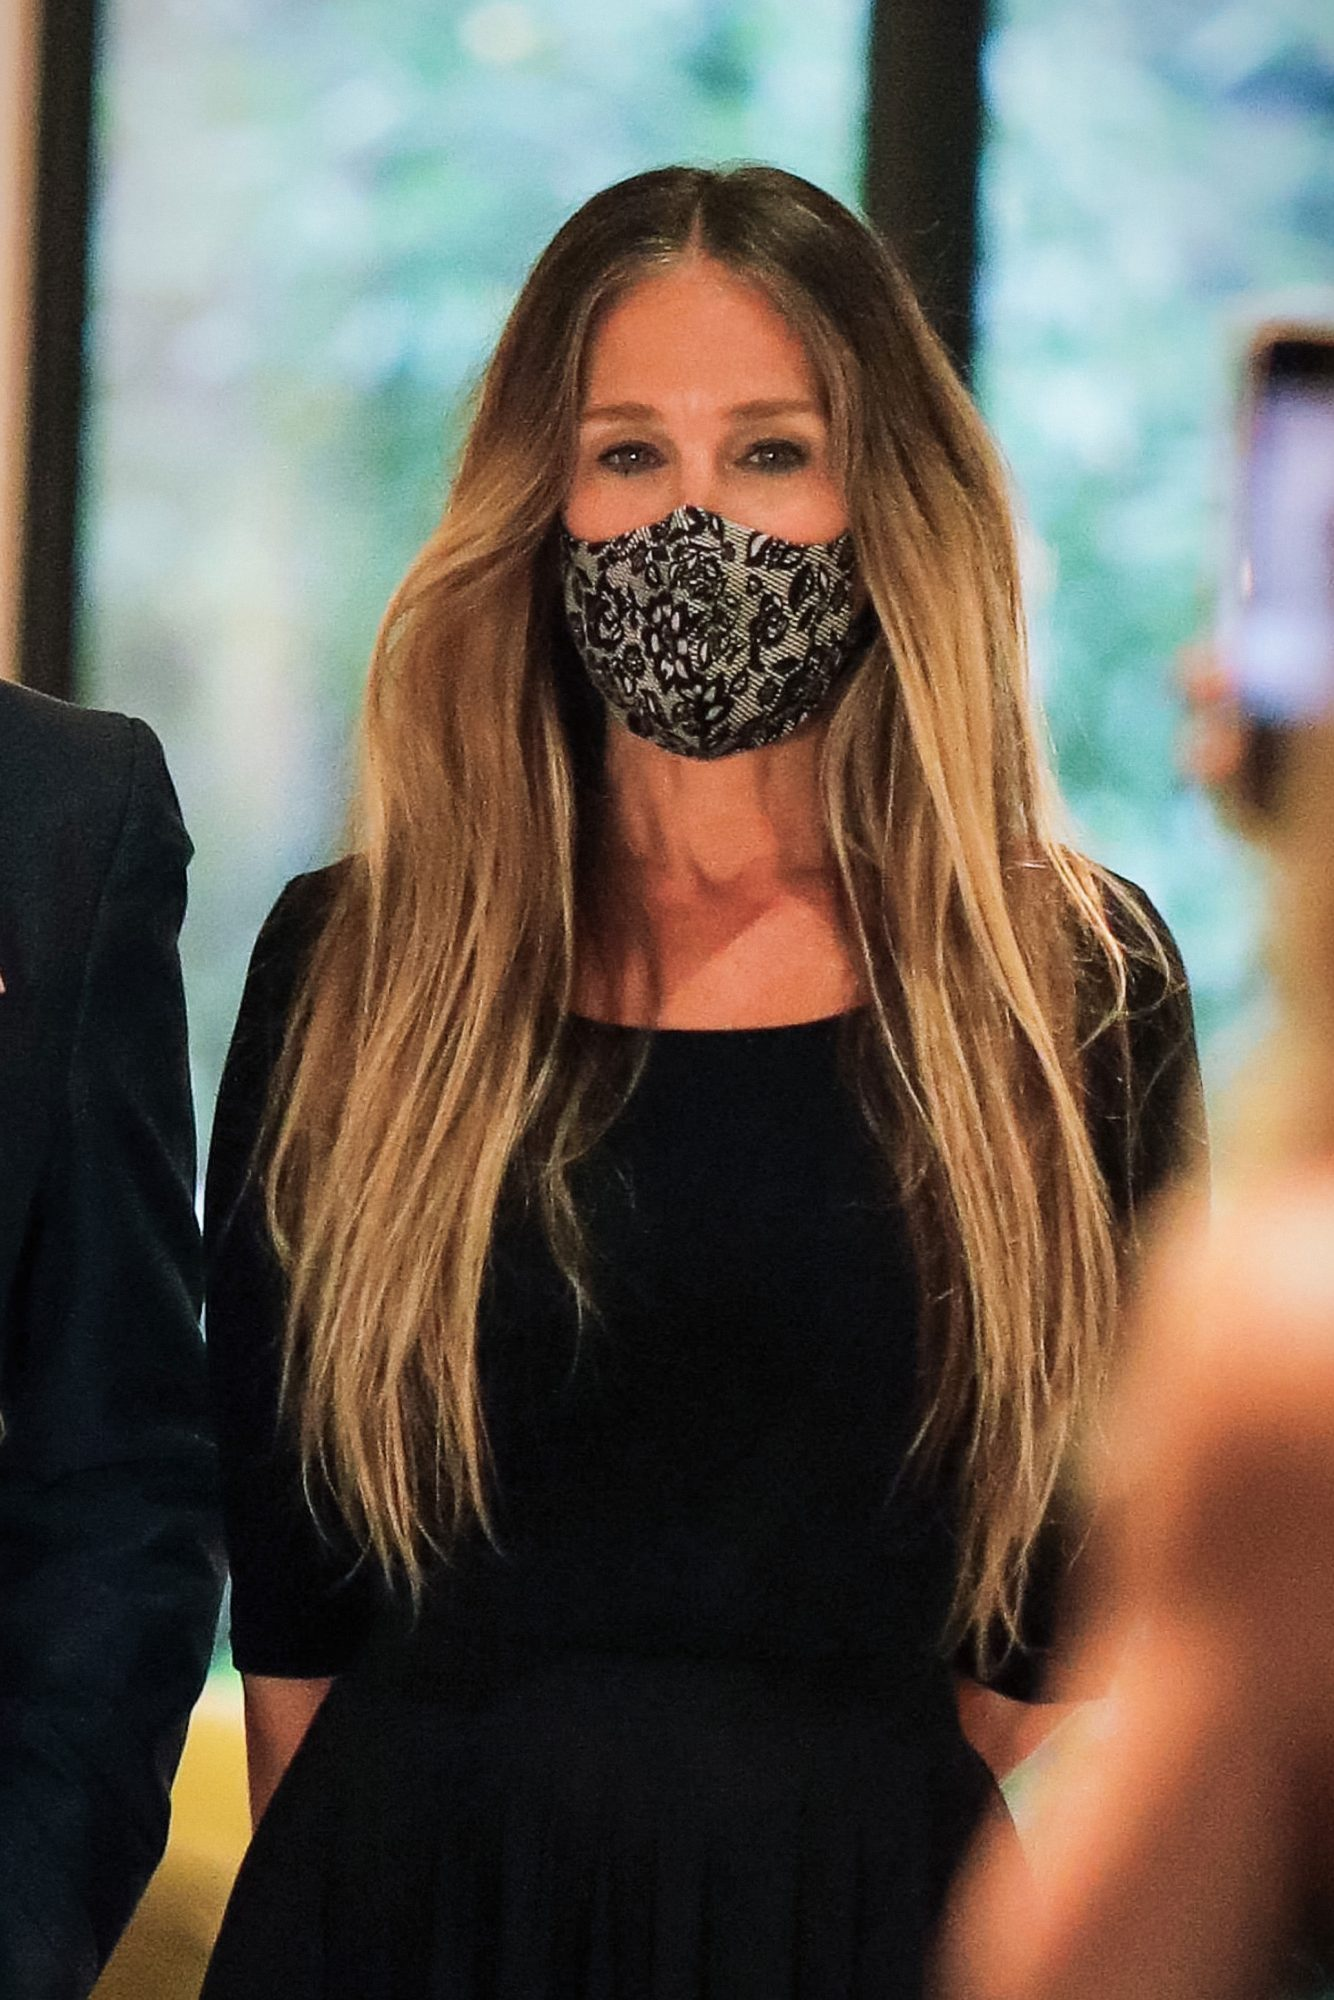 Sarah Jessica Parker Wears Wolford Mask